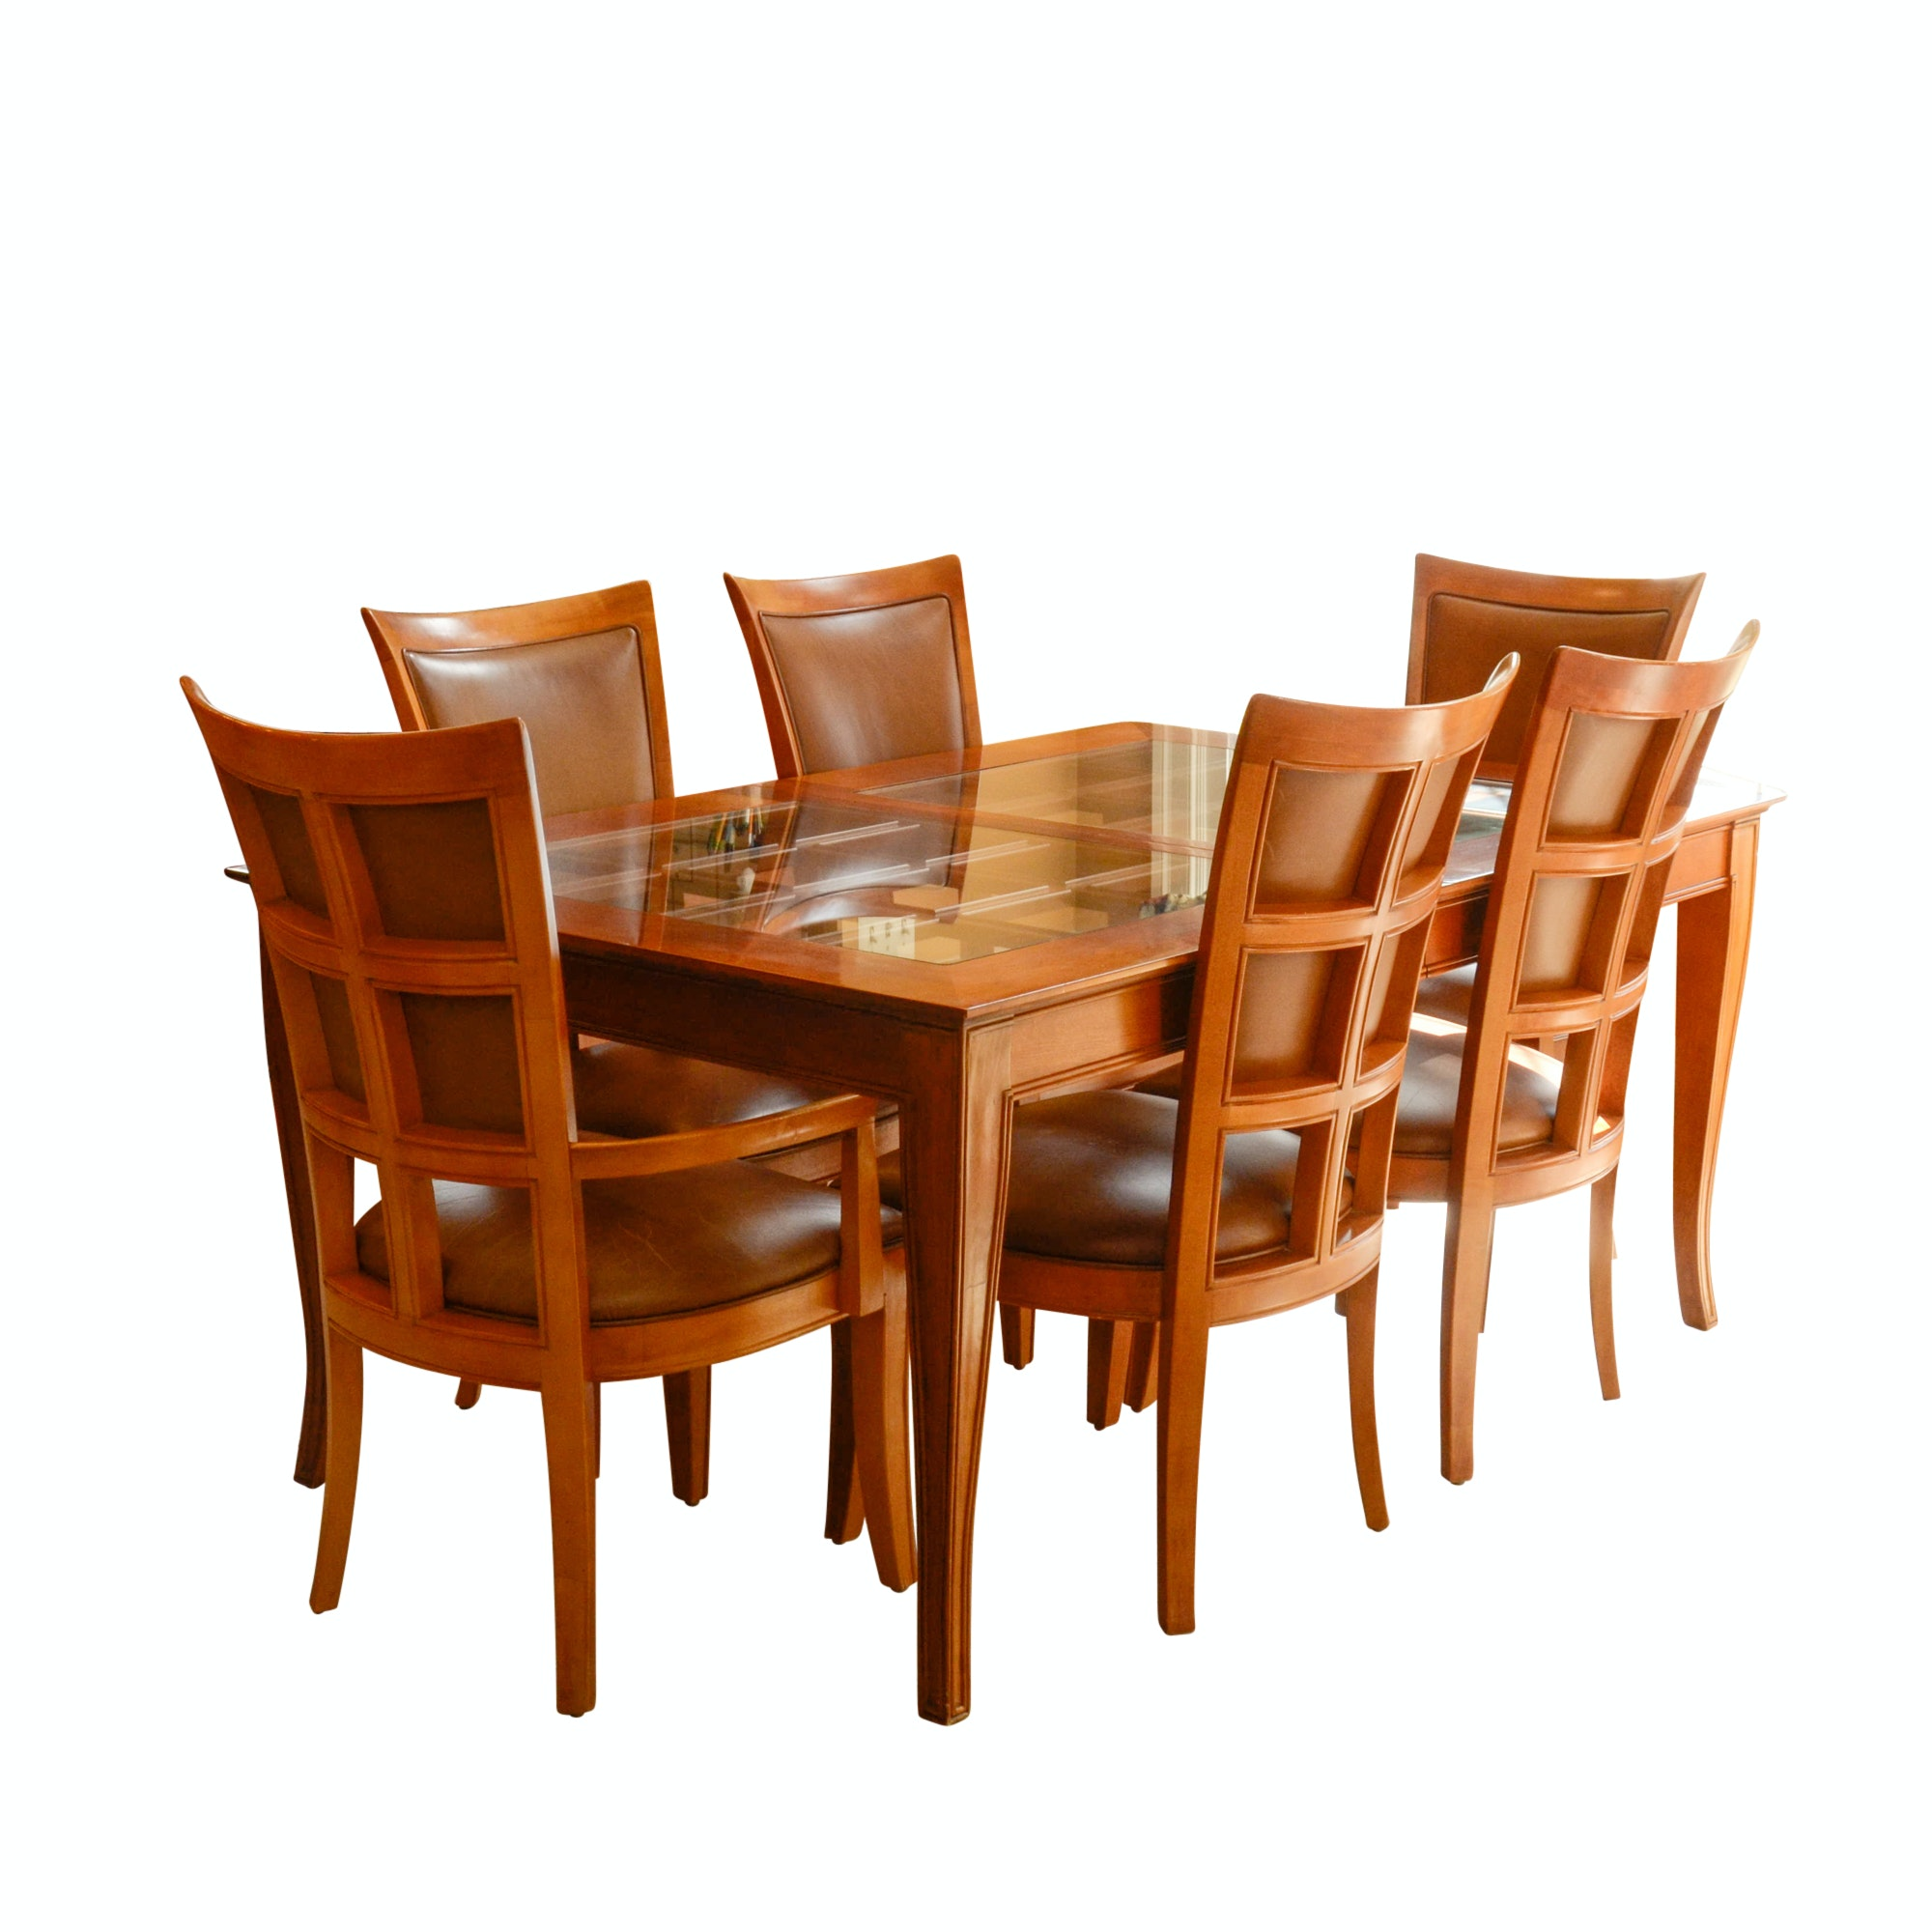 Contemporary Glass Top Dining Table with Six Chairs by Stanley Furniture